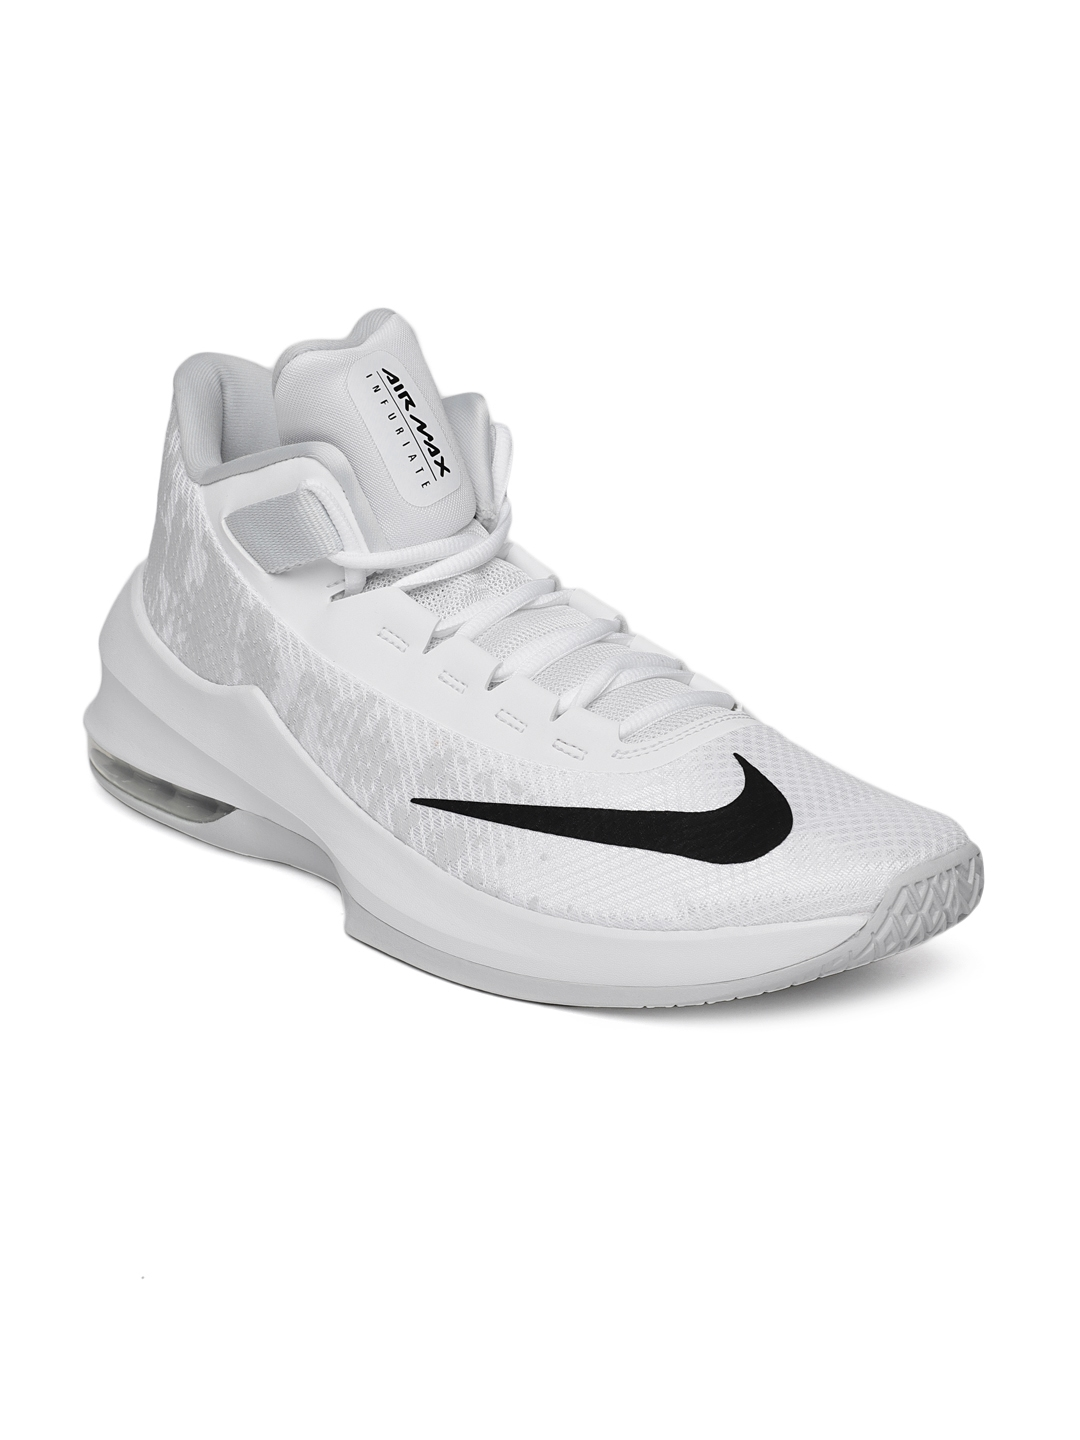 9184b1acaa4d Buy Nike Men White Air Max Infuriate 2 Mid Top Basketball Shoes ...